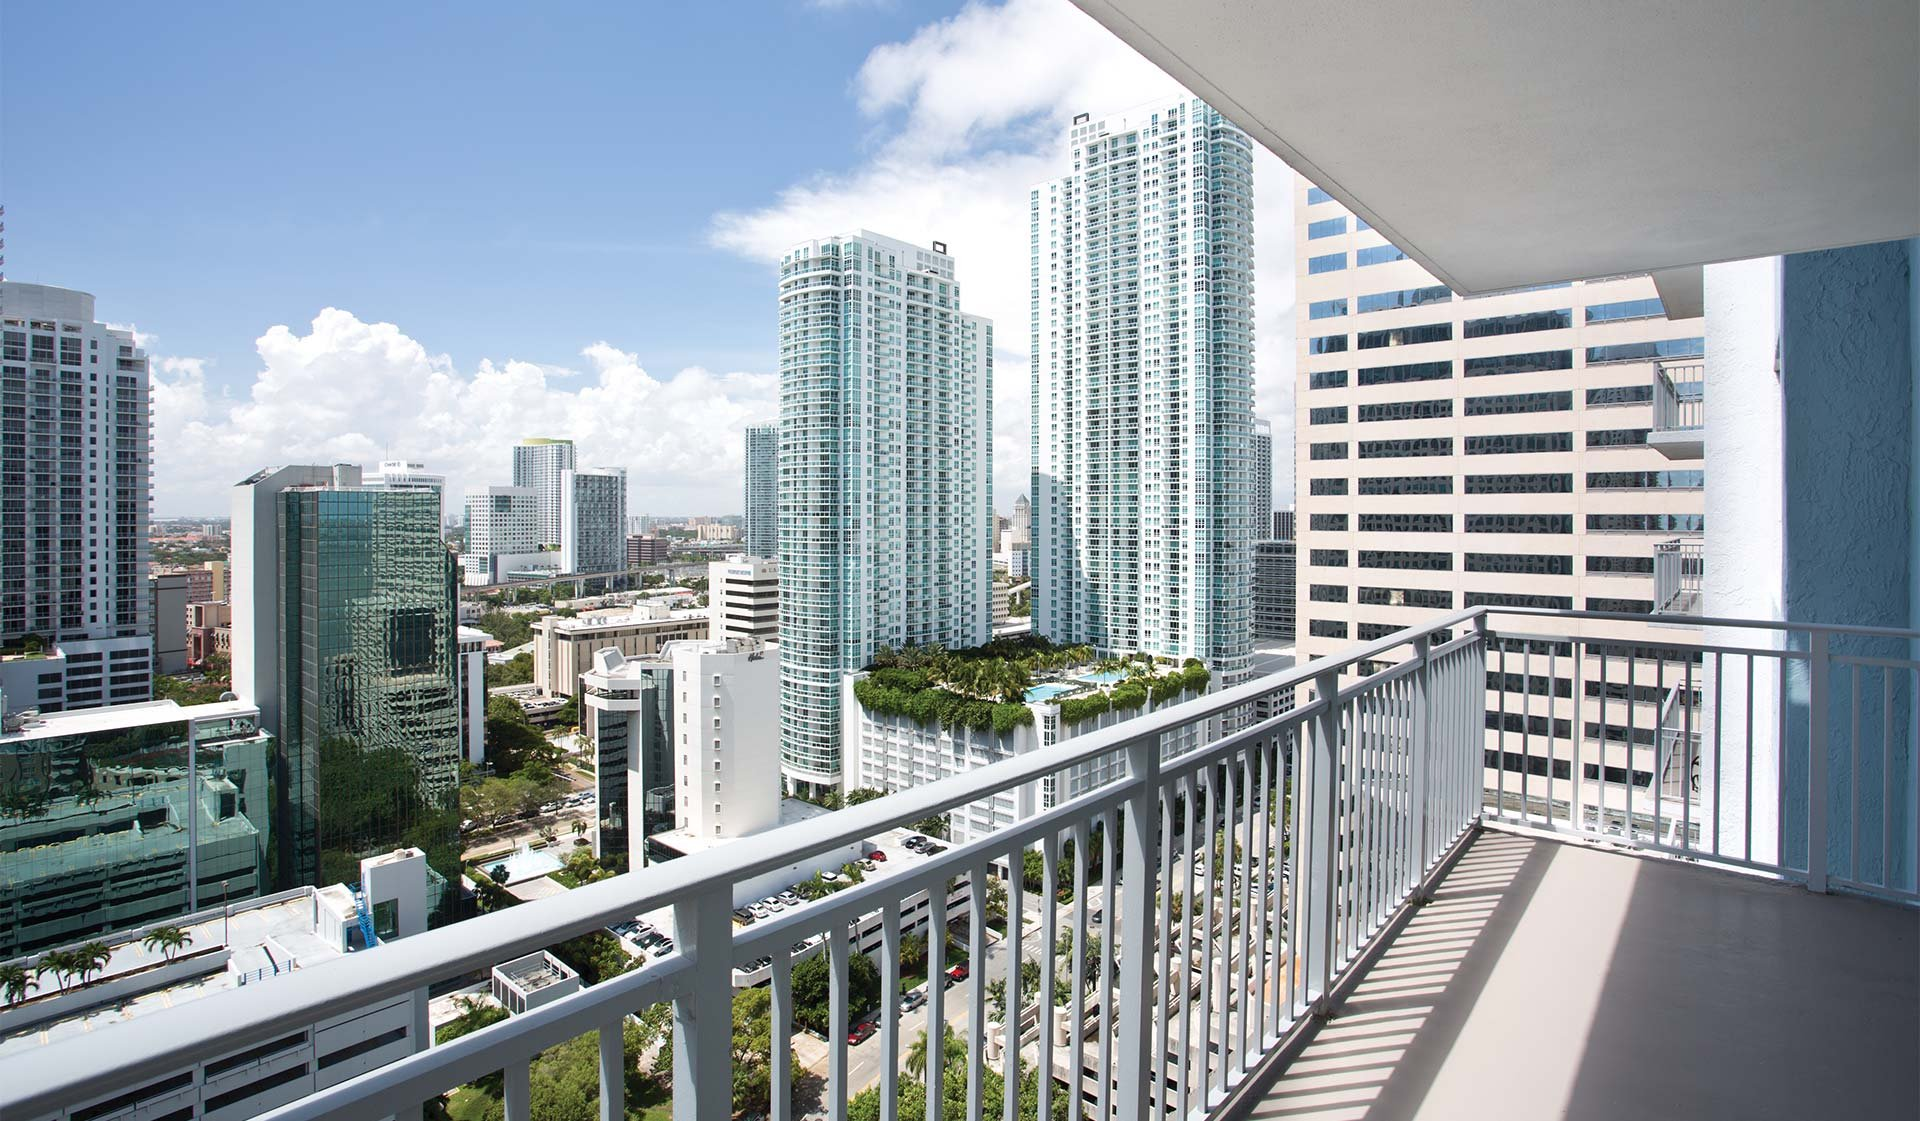 Yacht Club at Brickell - Balcony View - Miami, FL